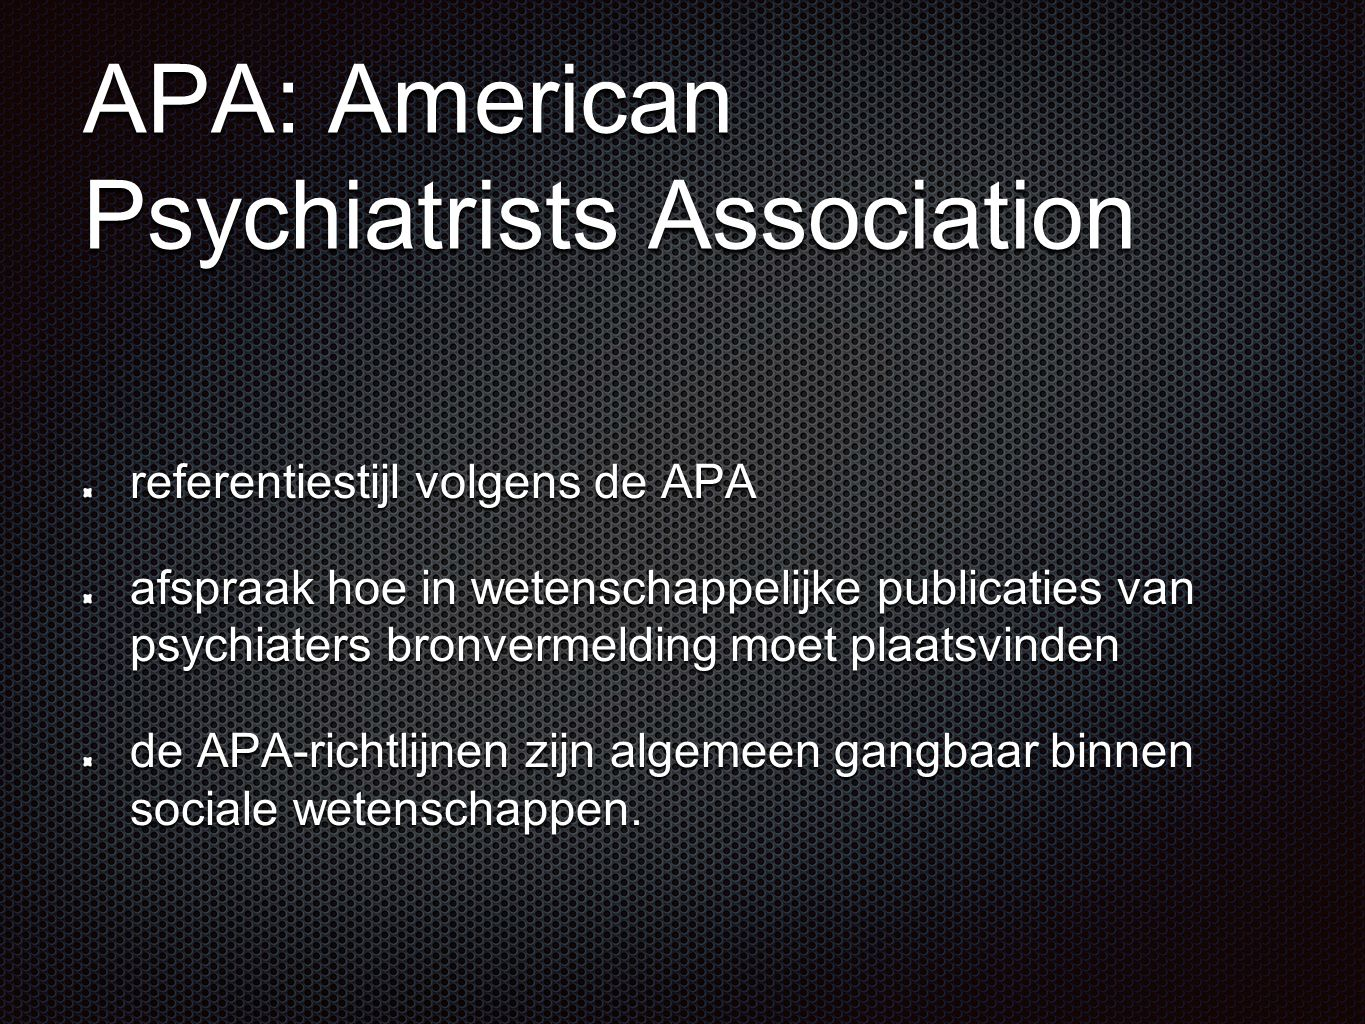 APA: American Psychiatrists Association